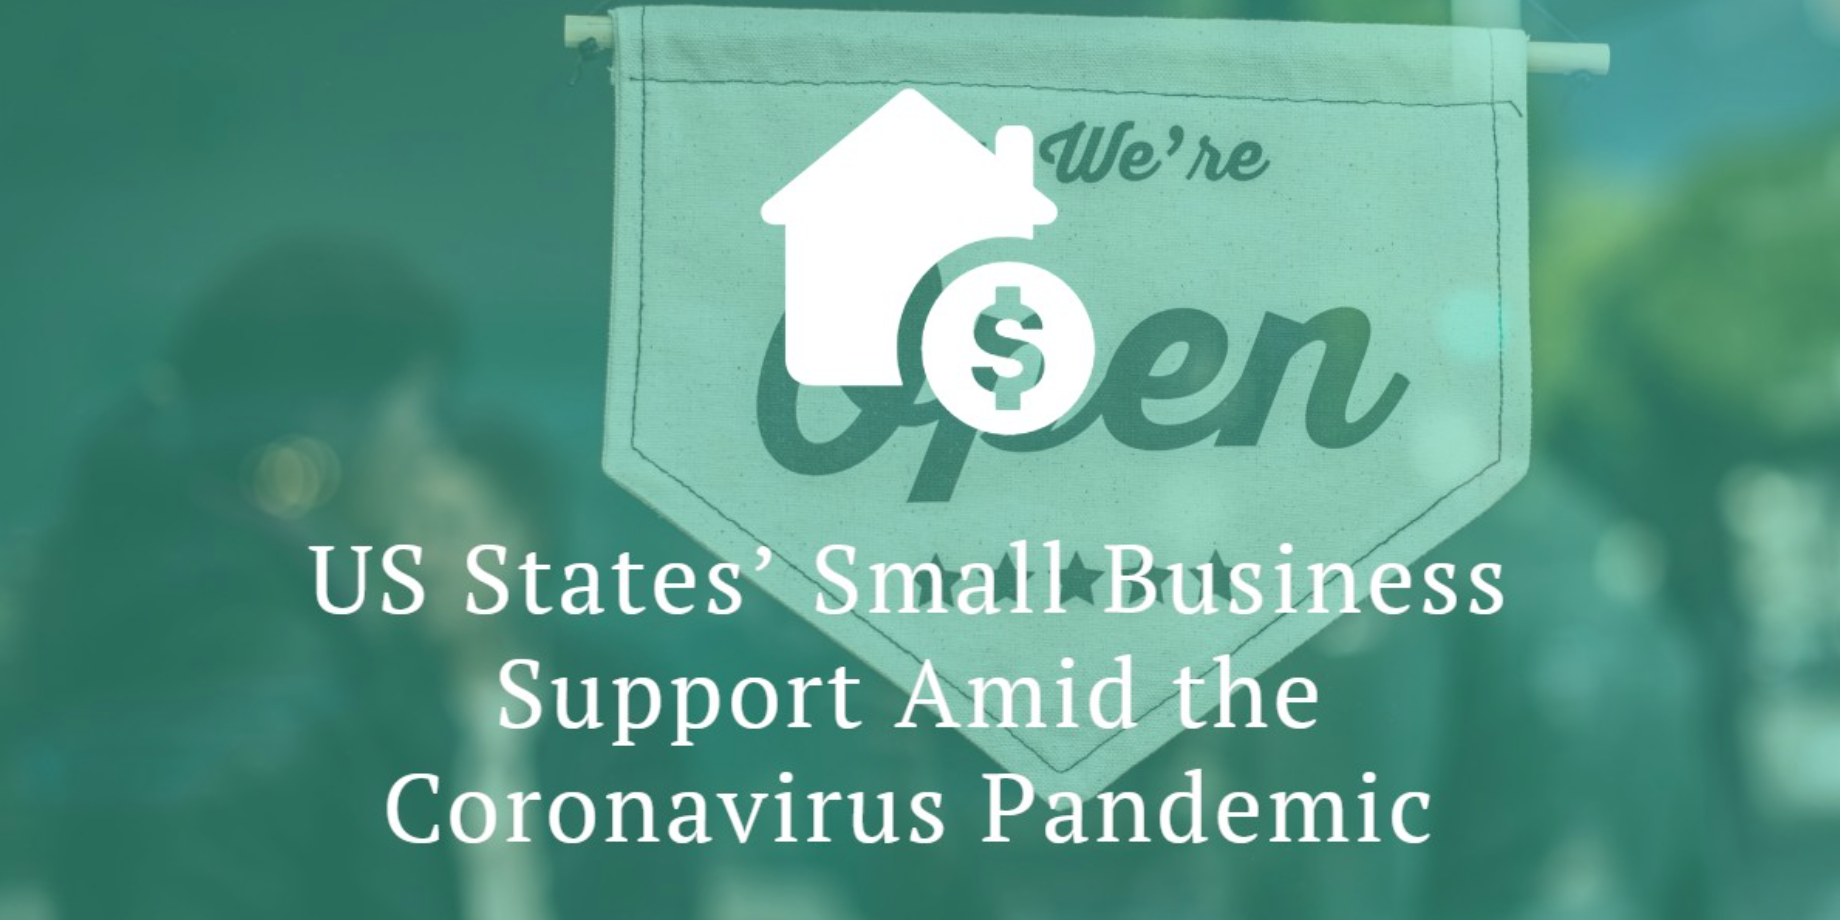 US States' Small Business Support Amid the Coronavirus Pandemic; image provided by BestAccountingSoftware.com.